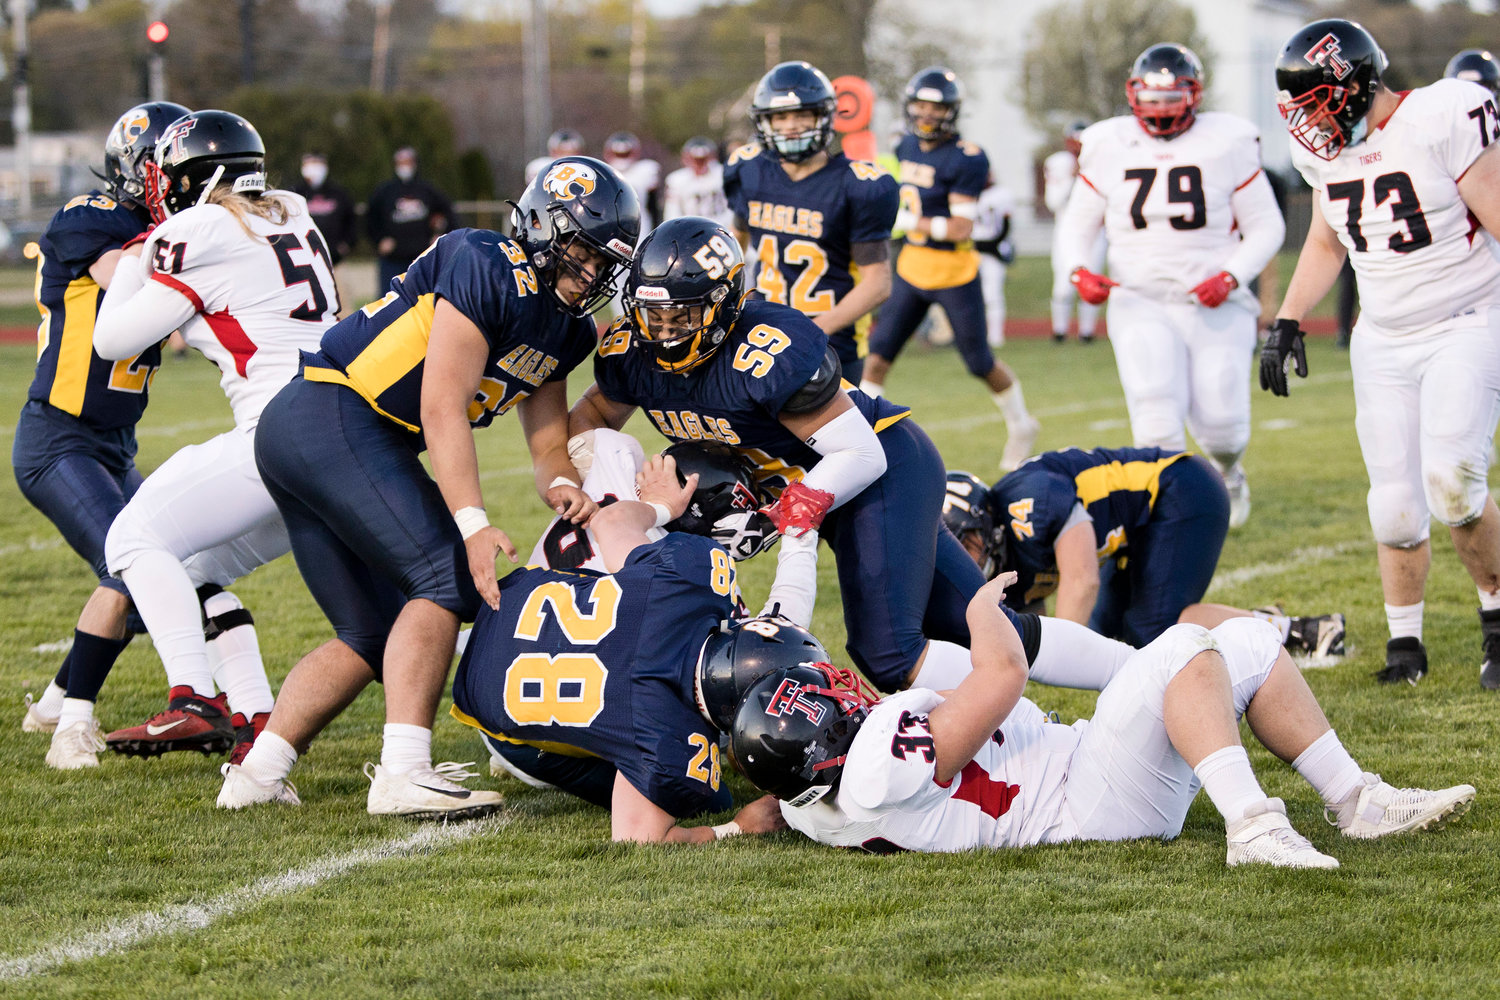 Tom Rocha (32), Luke Gorham (28), and Sergia Da Silva (59) tackle a Tolman opponent during the Division II semifinals, Friday.